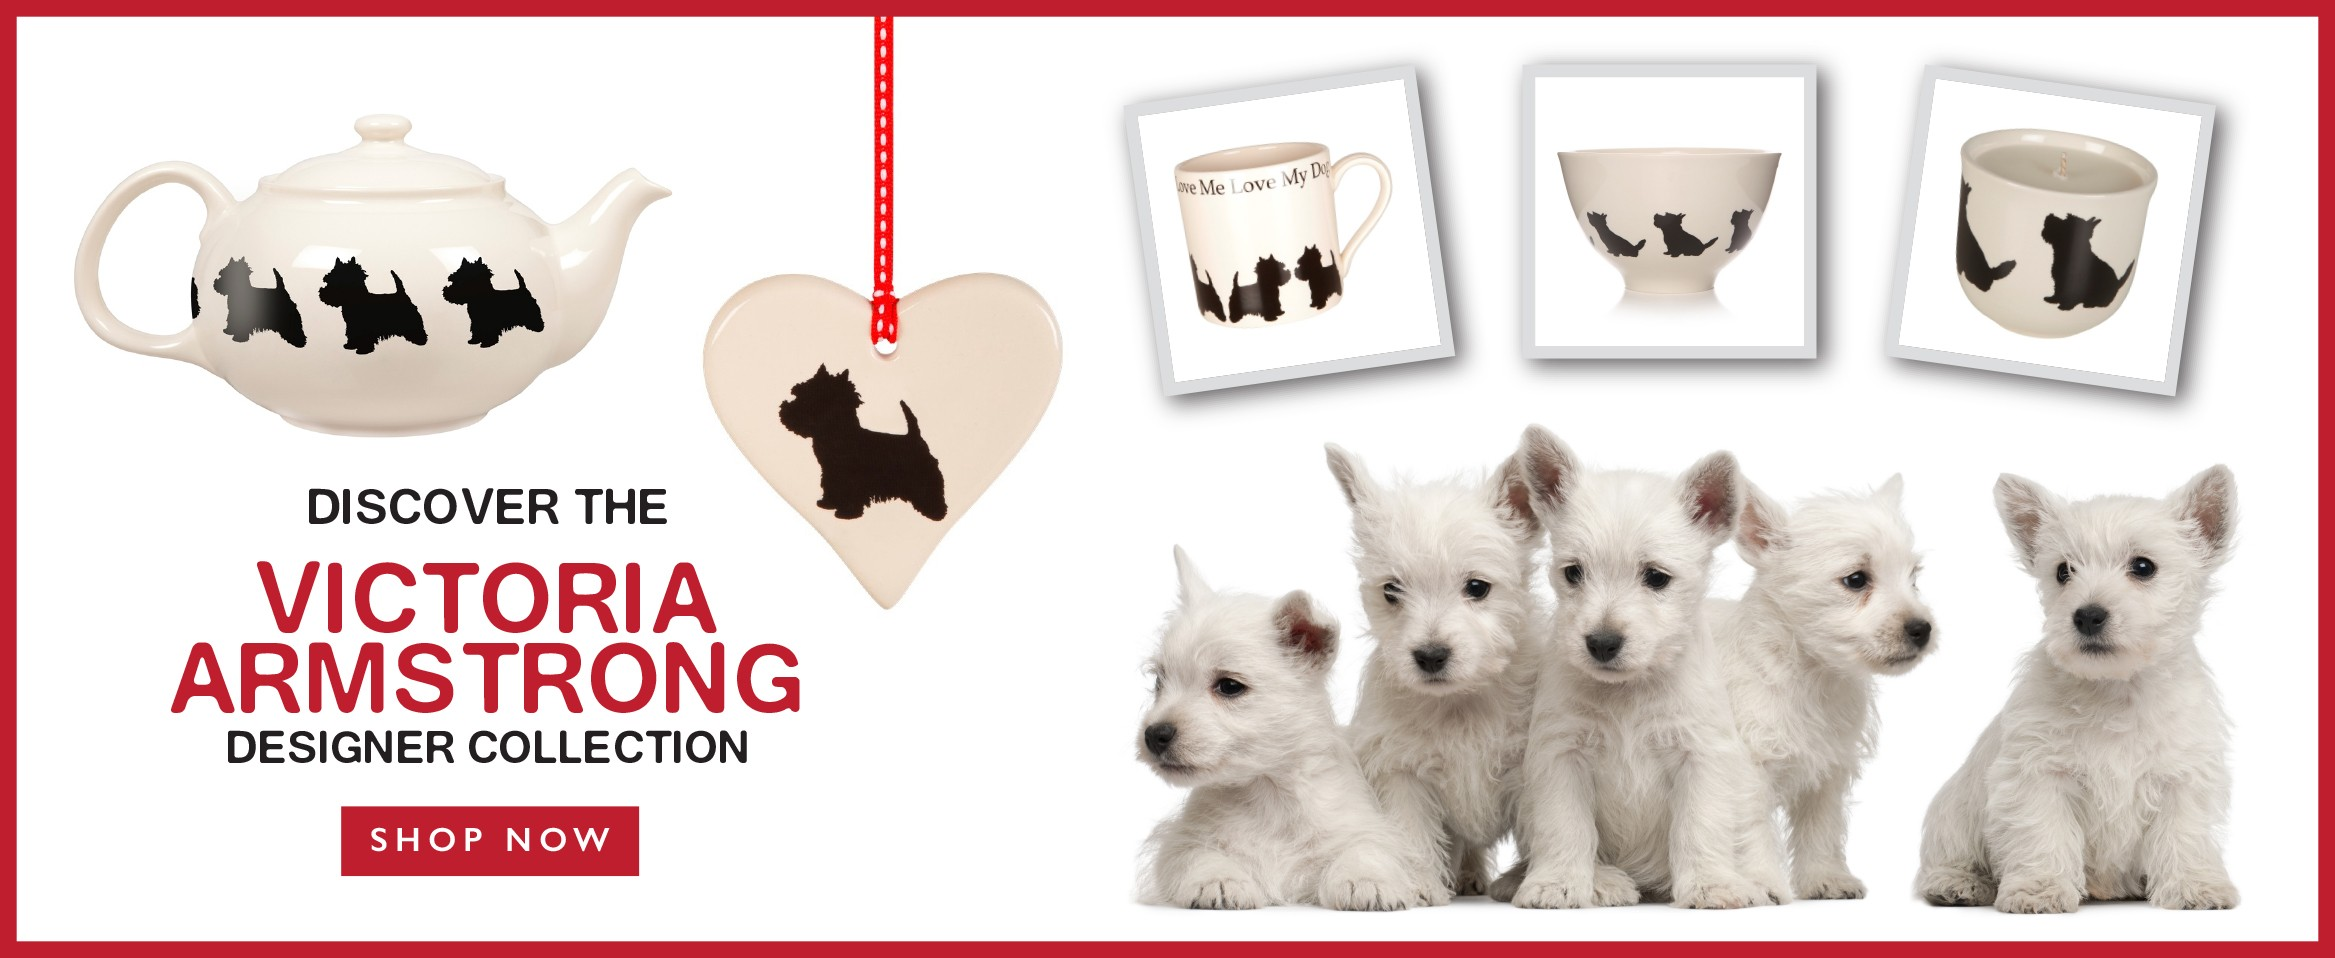 The Westie Signature Collection from Victoria Armstrong